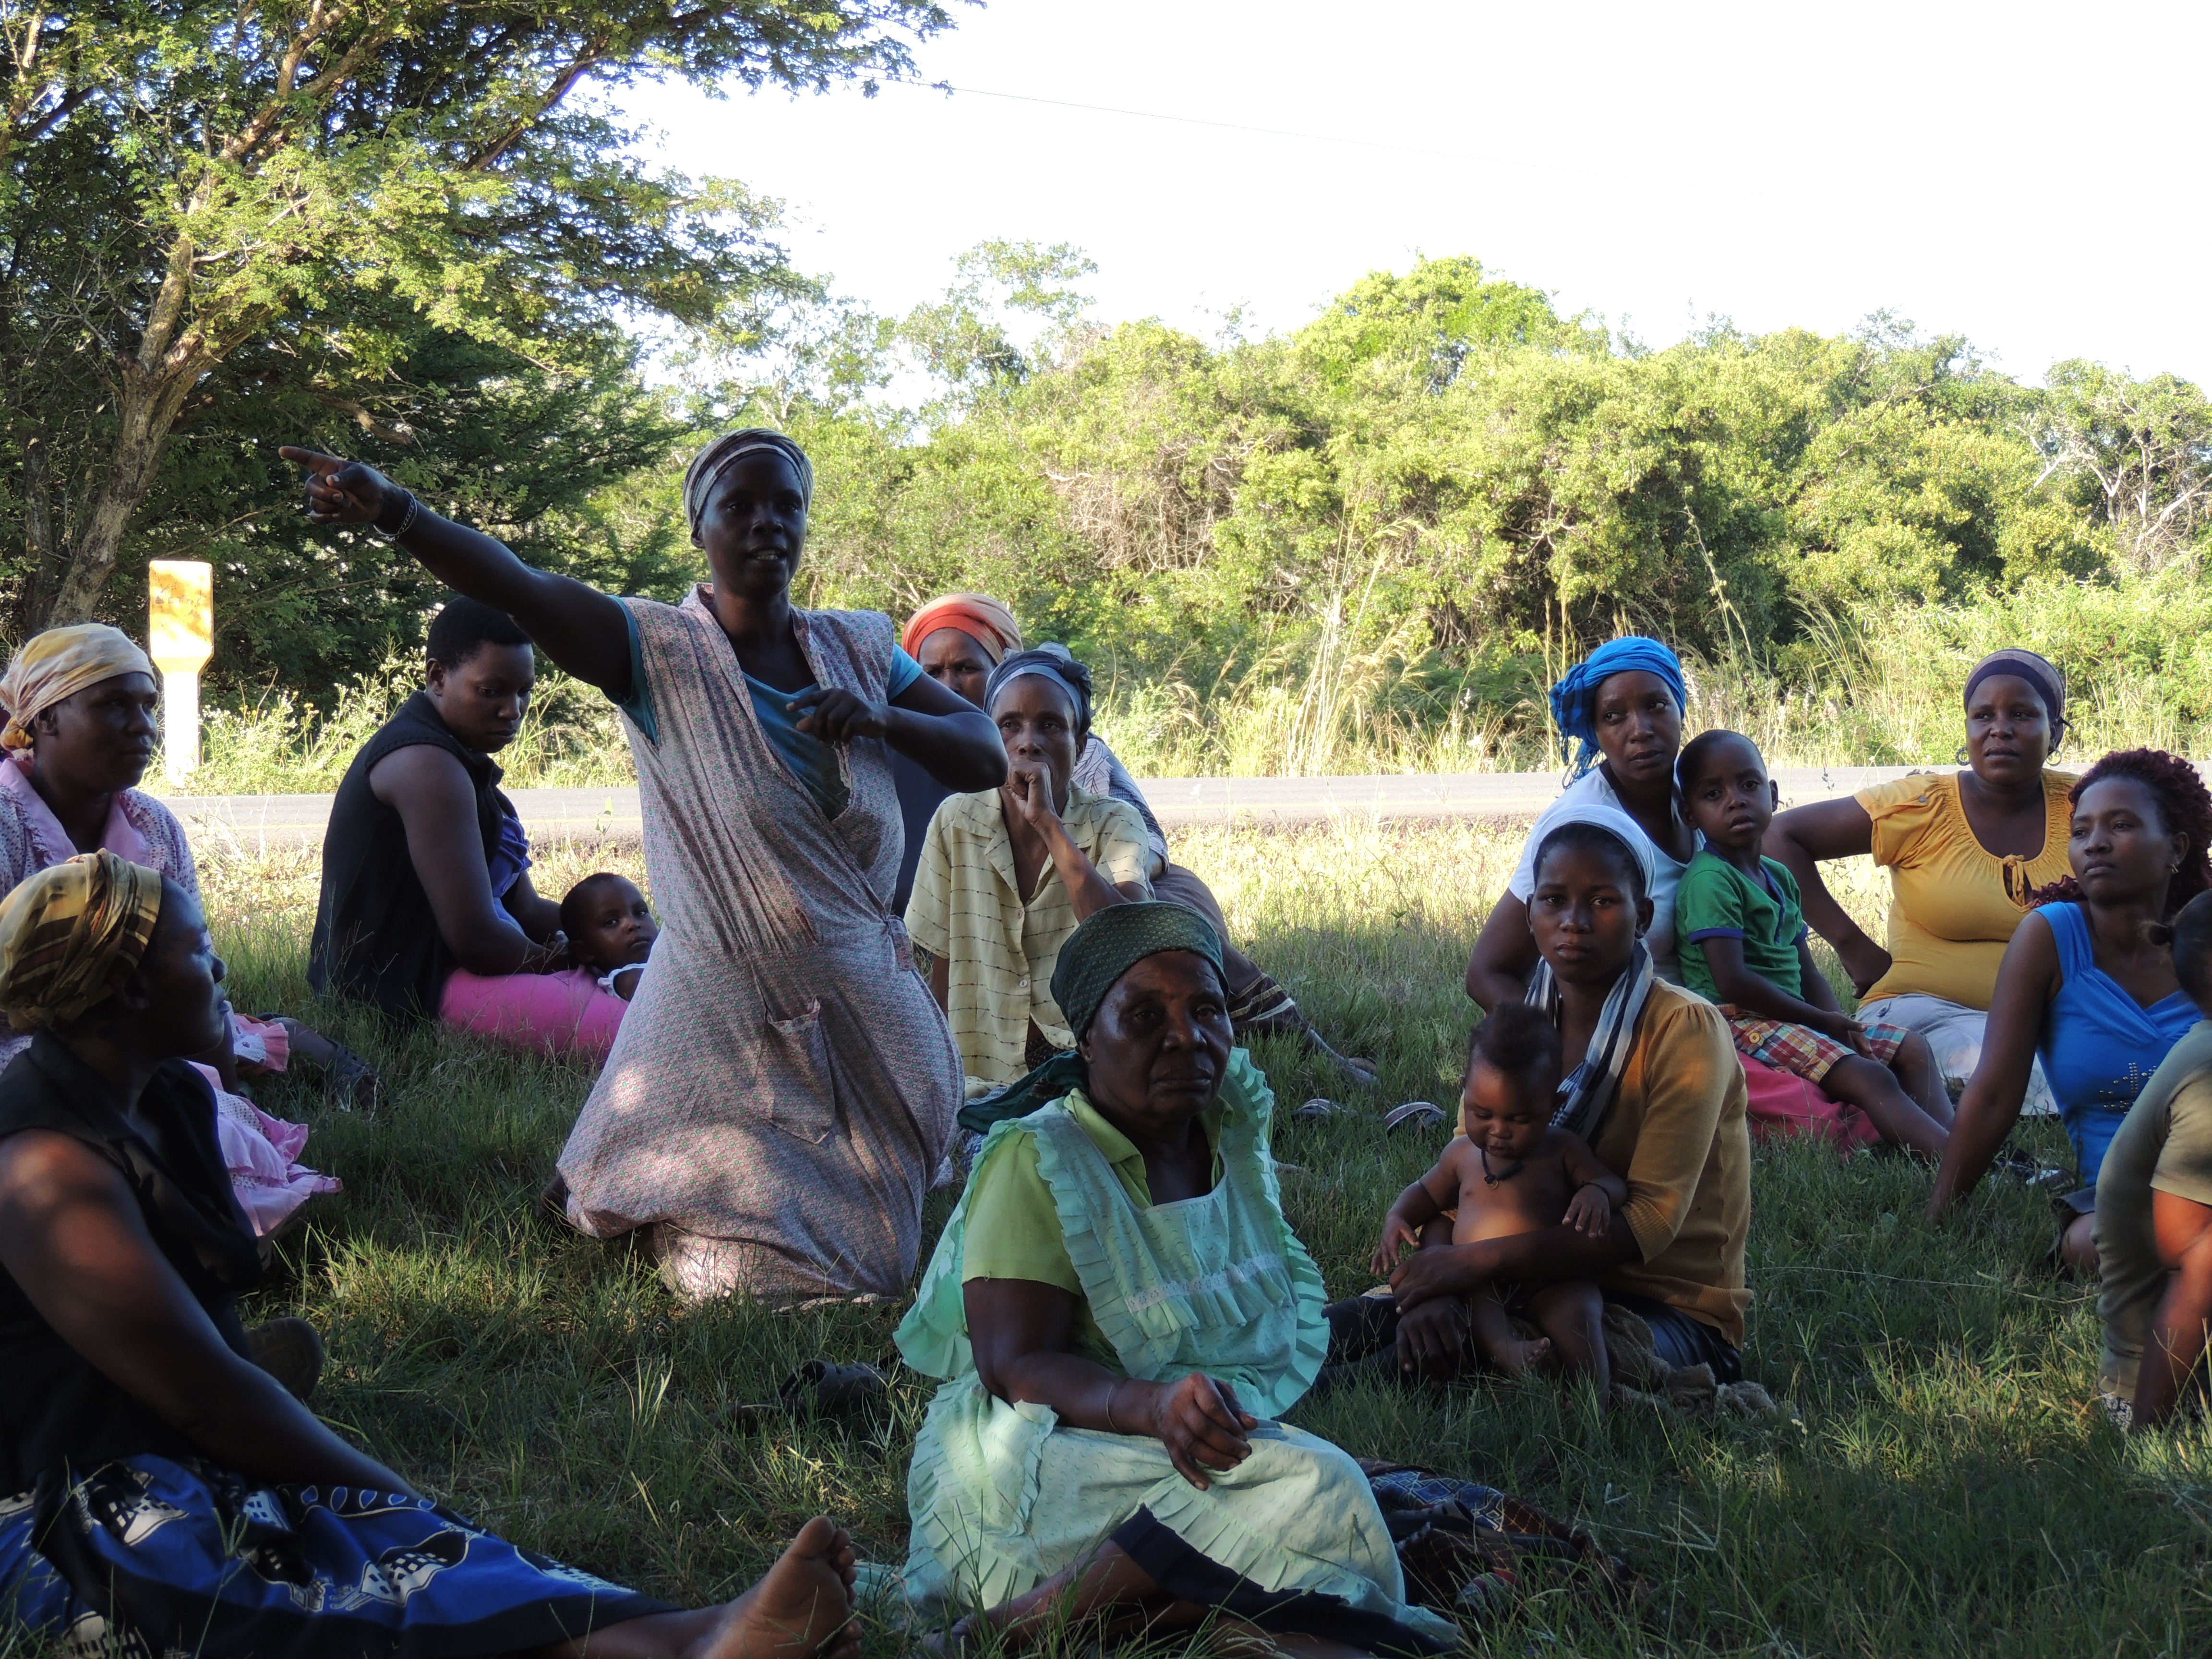 Tribal Meeting in Zululand